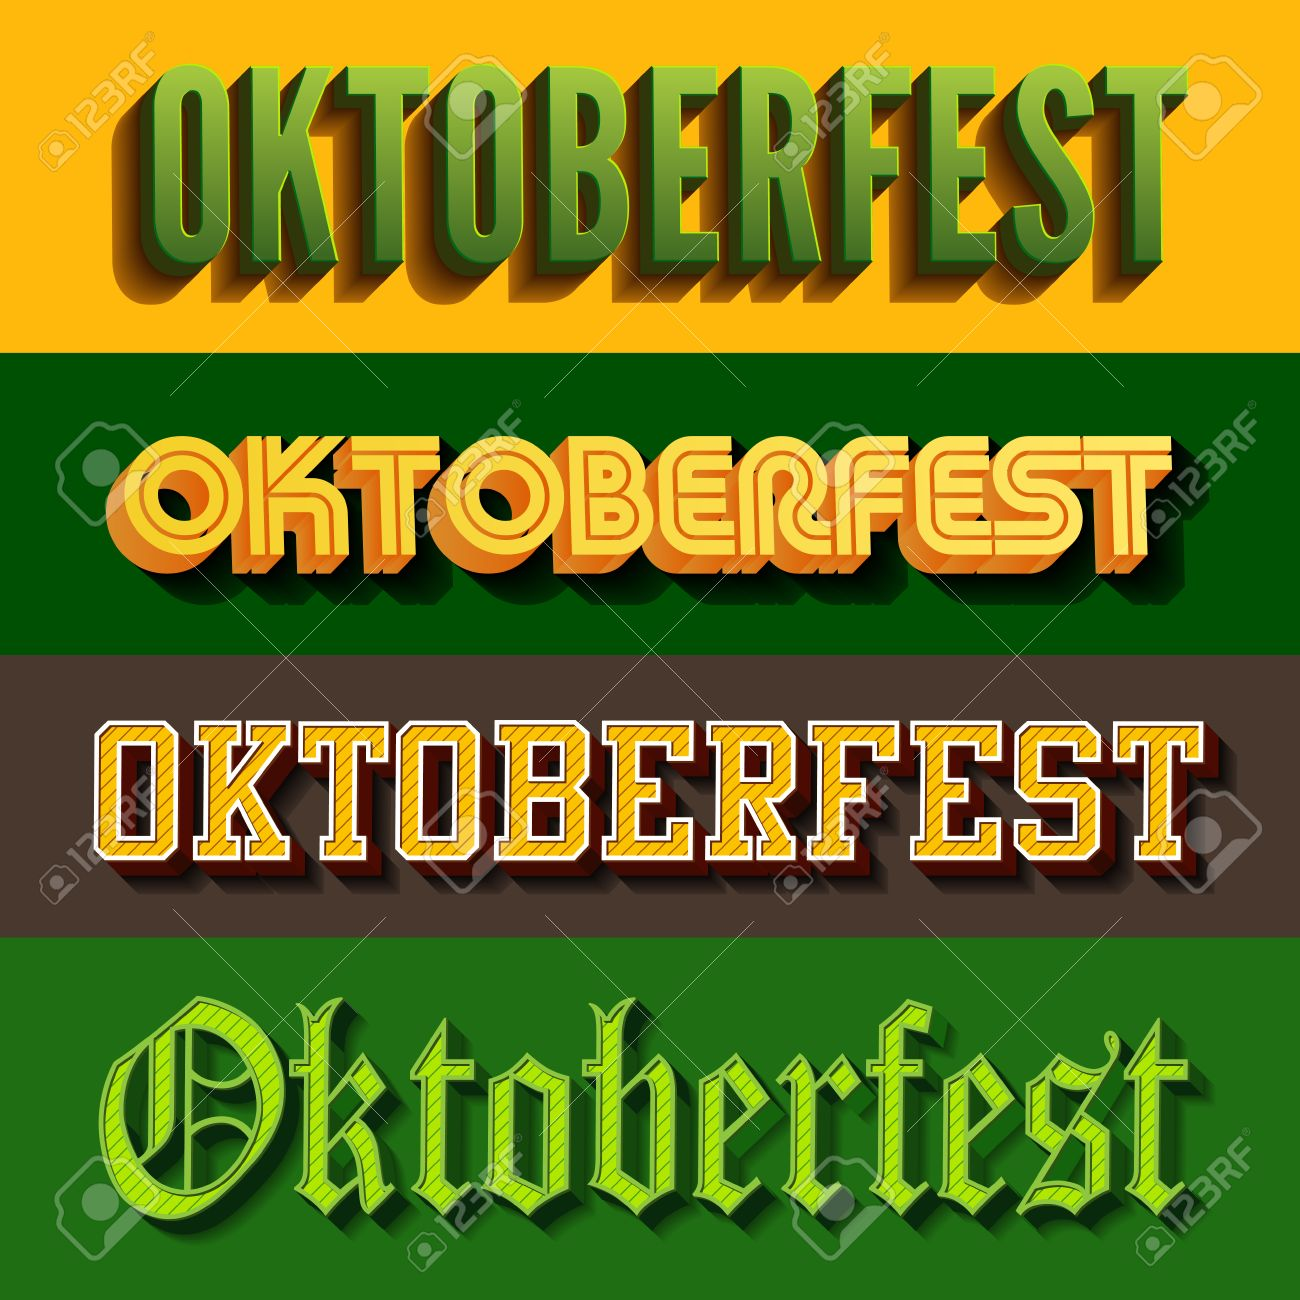 Oktoberfest Festival Typography Vintage Retro Styles Vector Design Poster Template Creative 3d Typo Font Octoberfest